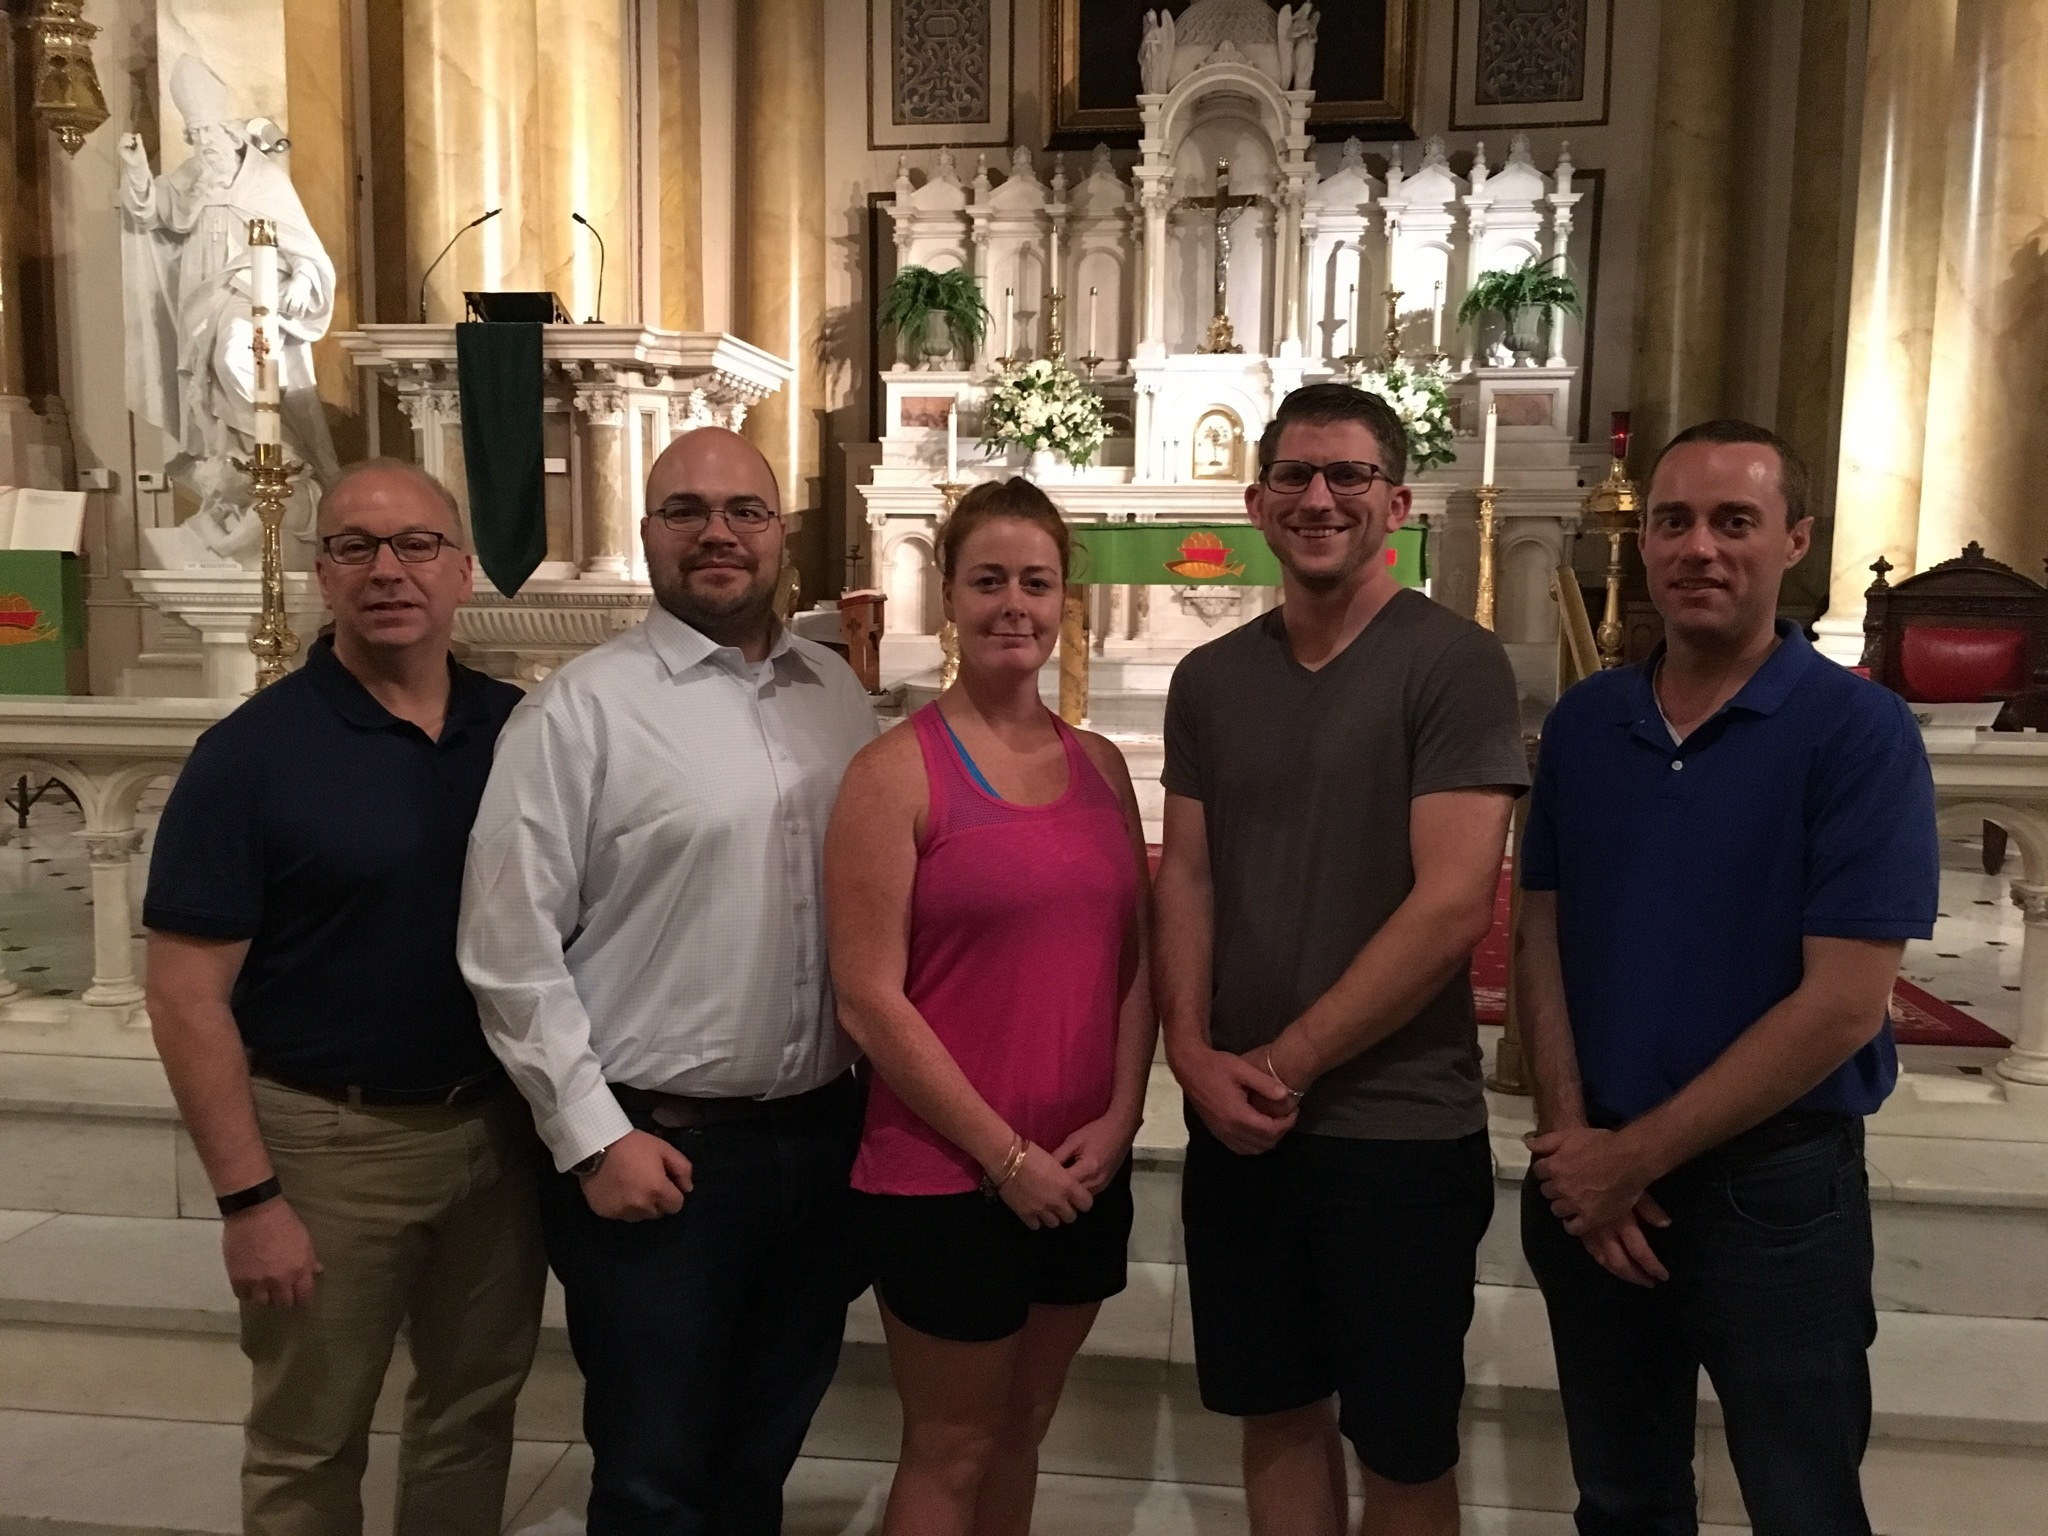 Evan Schaffner, Miles Humenansky, Katie Kenny, Scott Gillenwater, and Mike McGrory are preparing for the Sacraments of Initiation at Easter 2018.